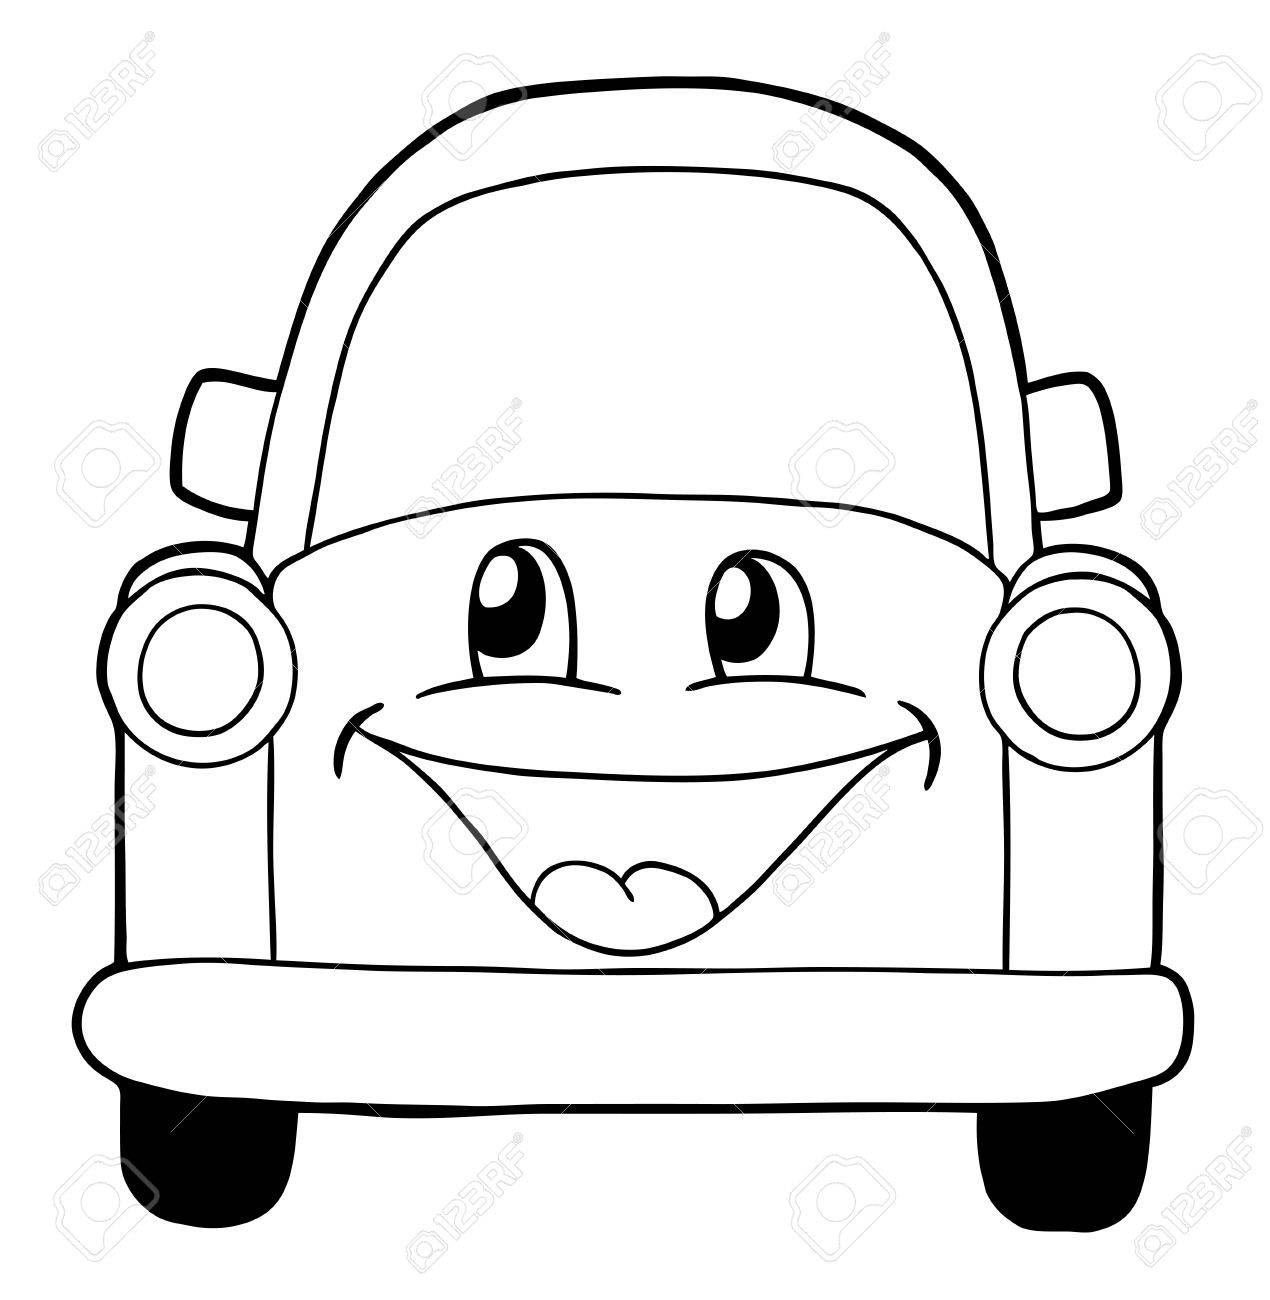 Cute Car Coloring Page Illustration